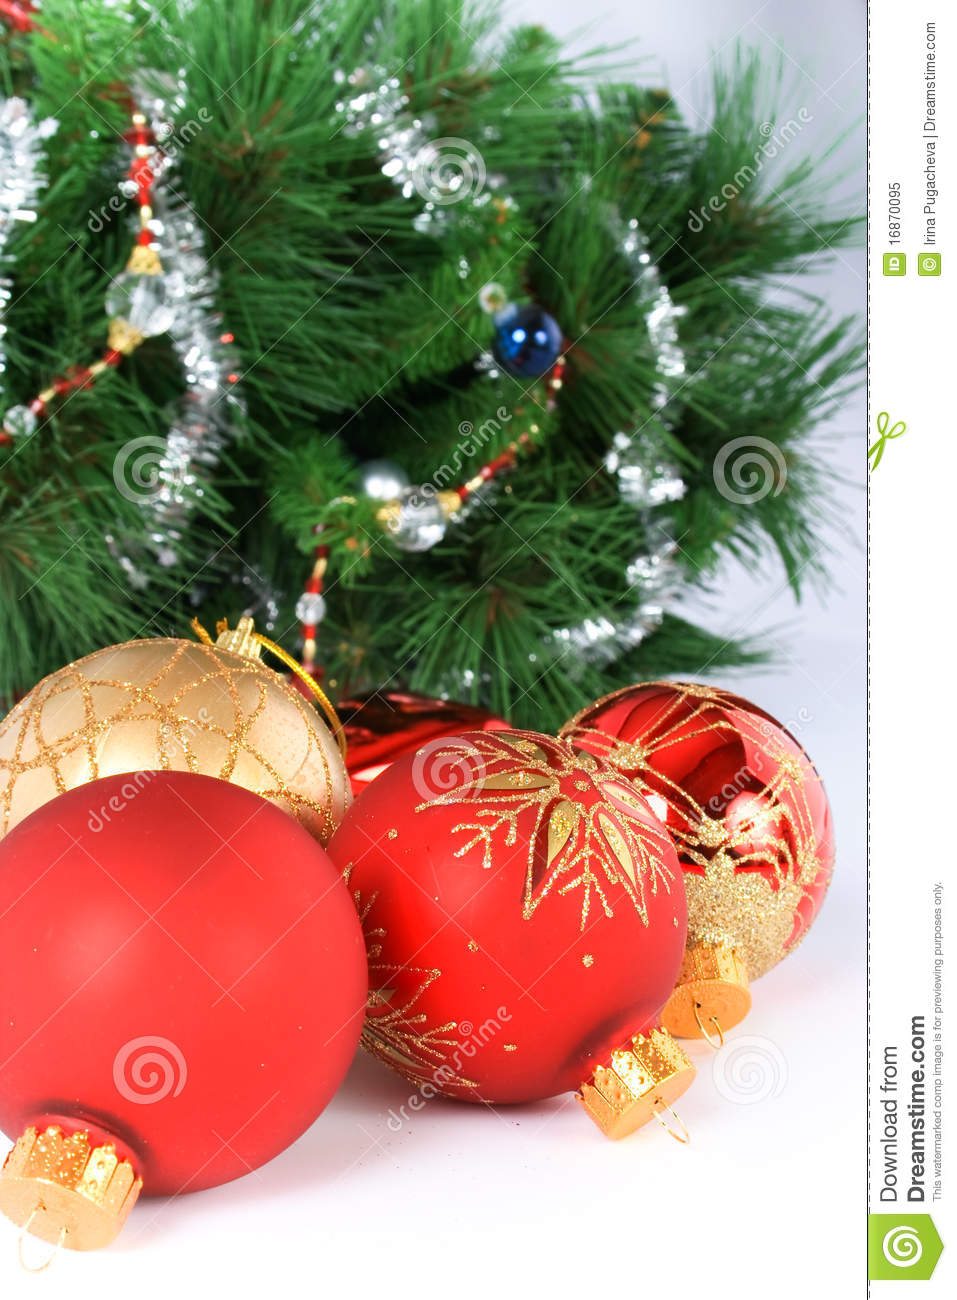 Toys Under Christmas Tree : New year s toys royalty free stock photo image